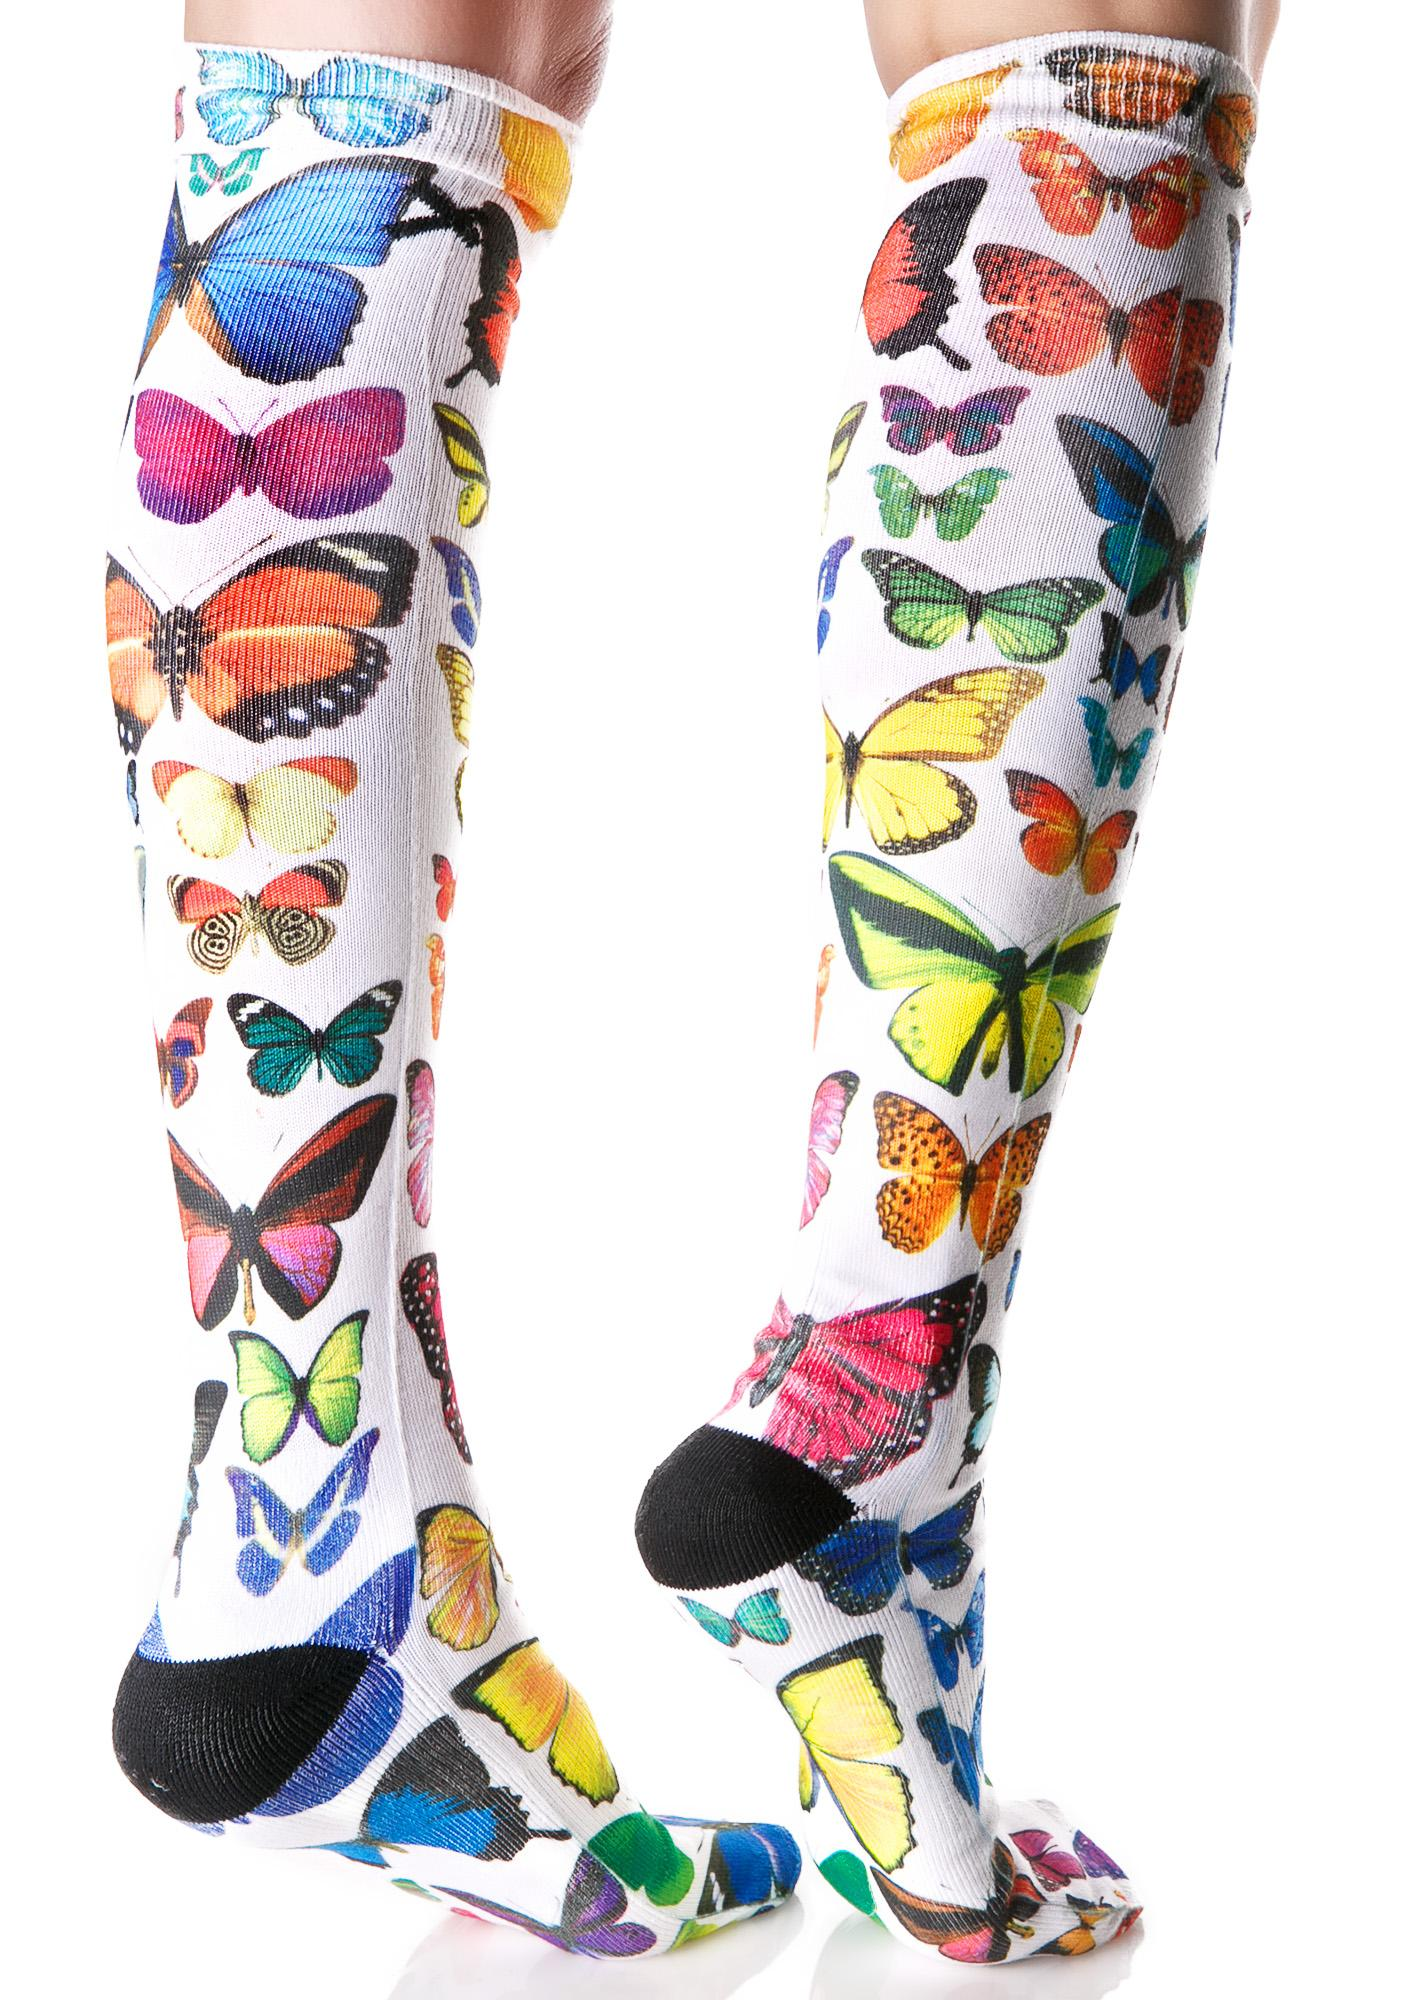 Odd Sox Butterflies Knee High Socks